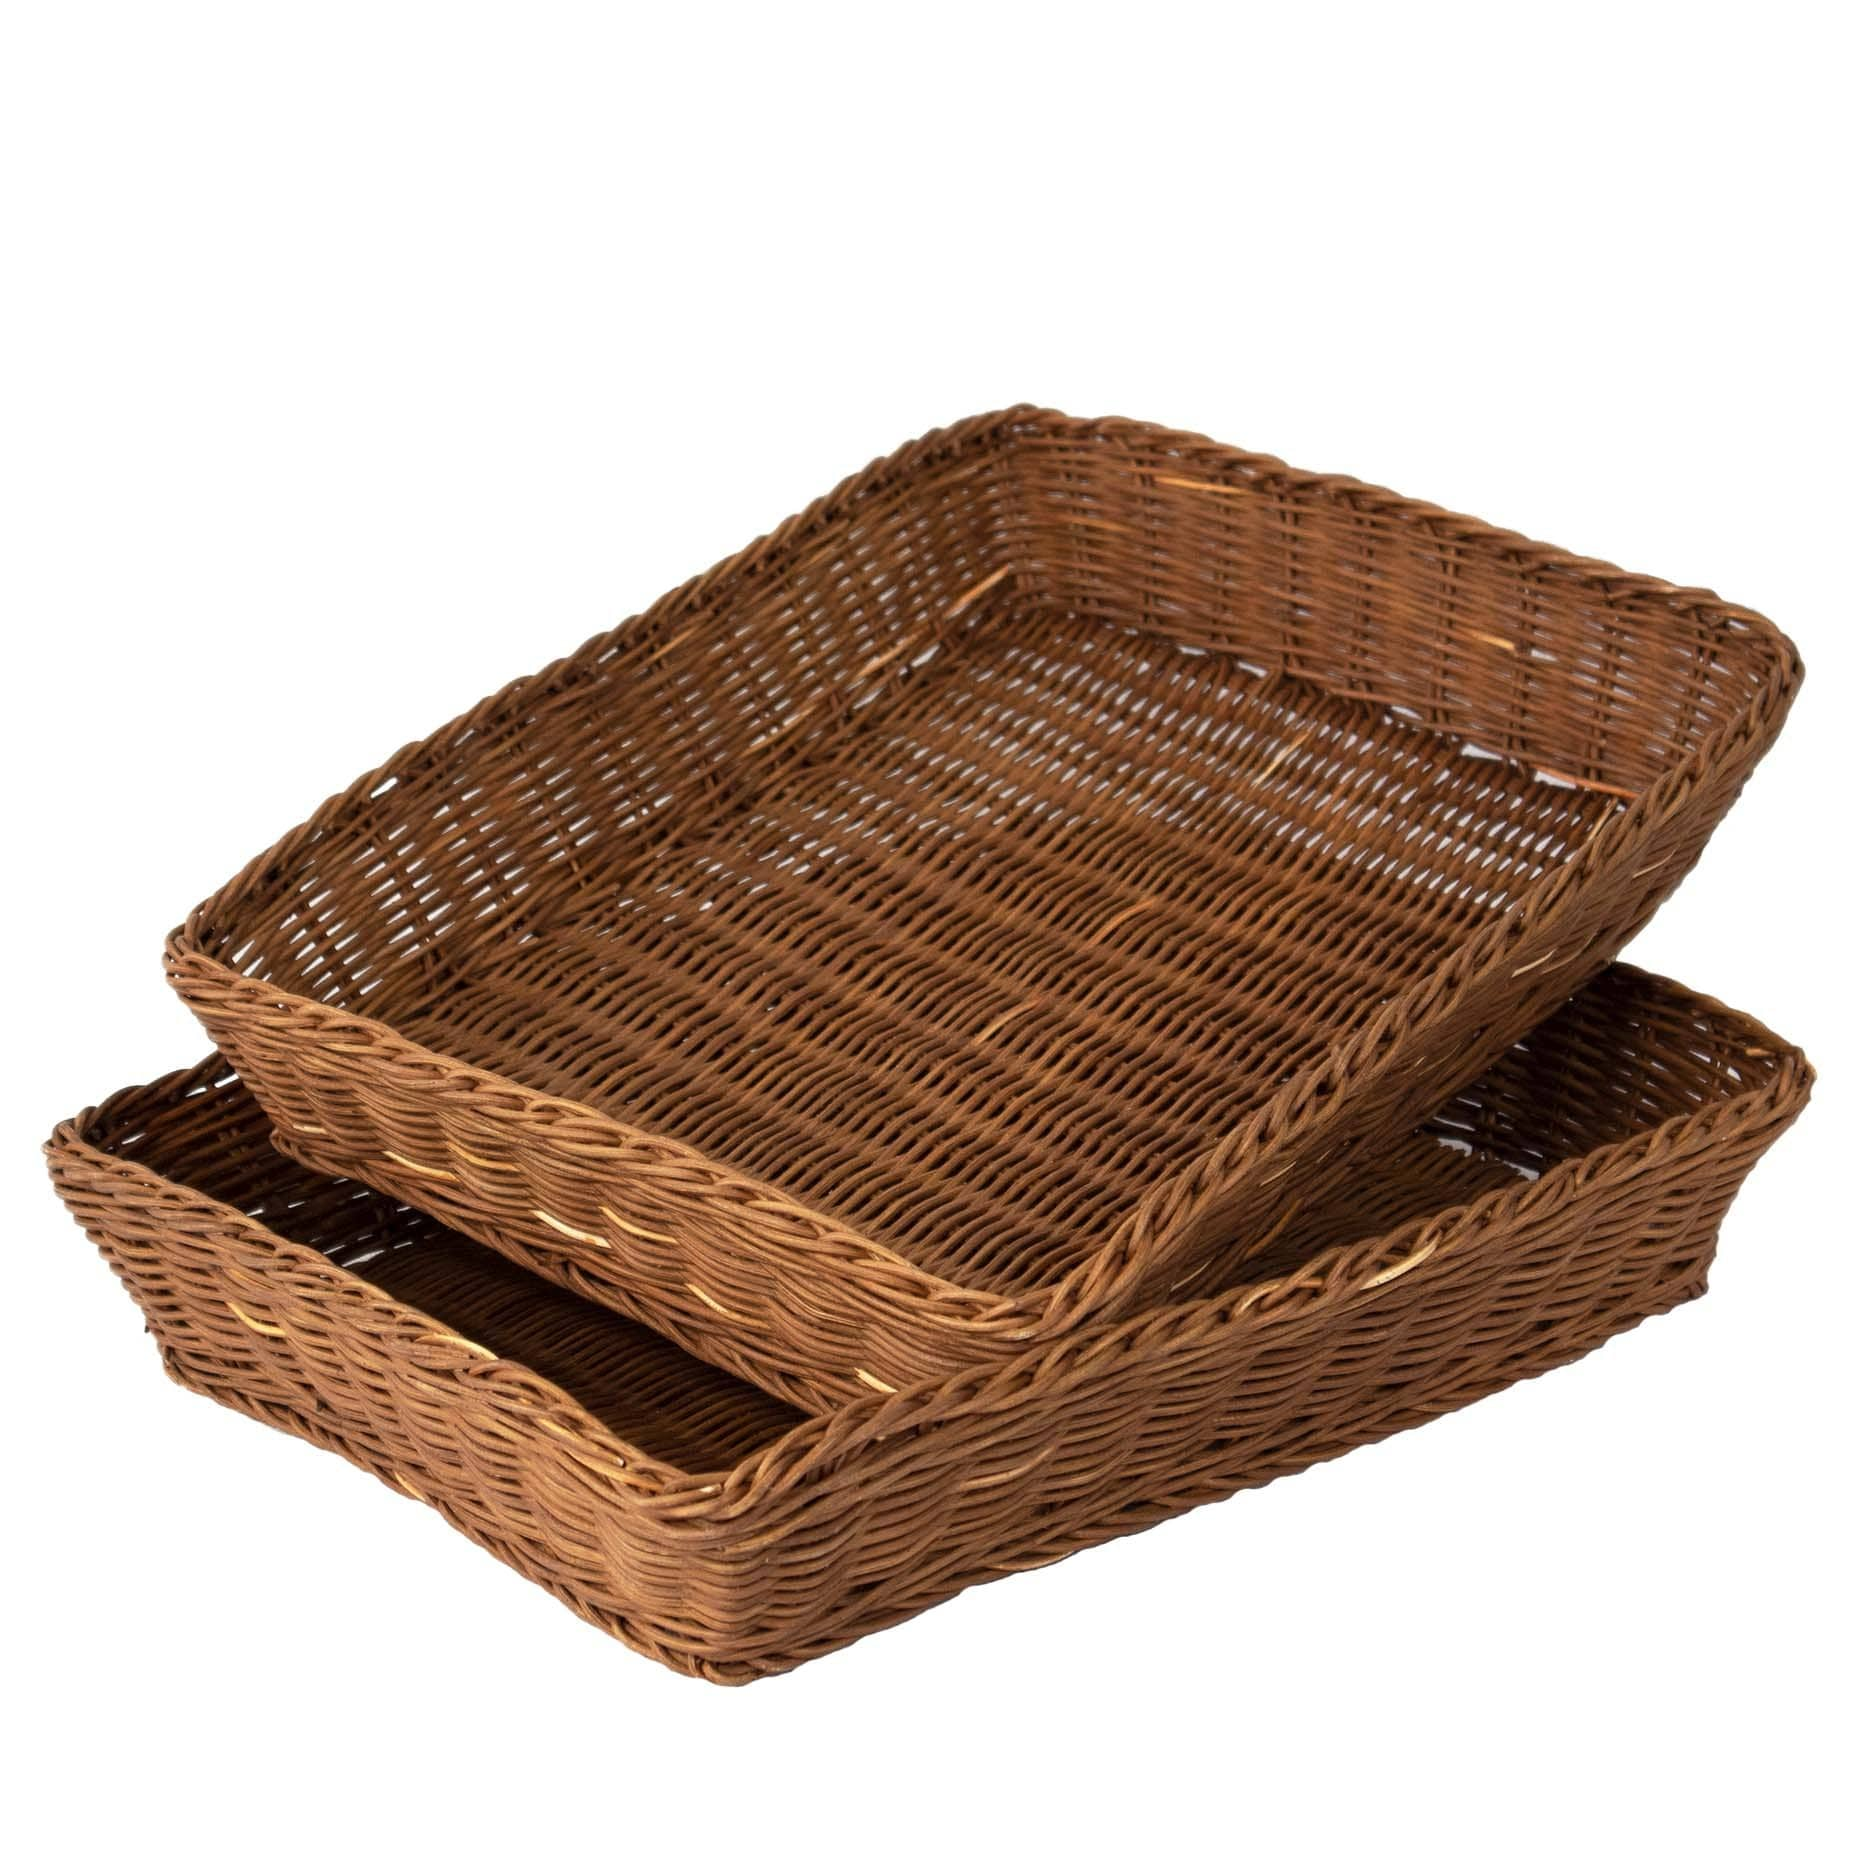 Made Terra Serving Tray 2 Pack Large Premium Wicker Storage Basket,Serving Trays and Coffee Trays,Hand Woven Serving and Decorative Trays for Coffee,Breakfast,Bread,Food,Dish,Snacks for Kitchen,Living Room,Bathroom Storage(2 Pack Large)